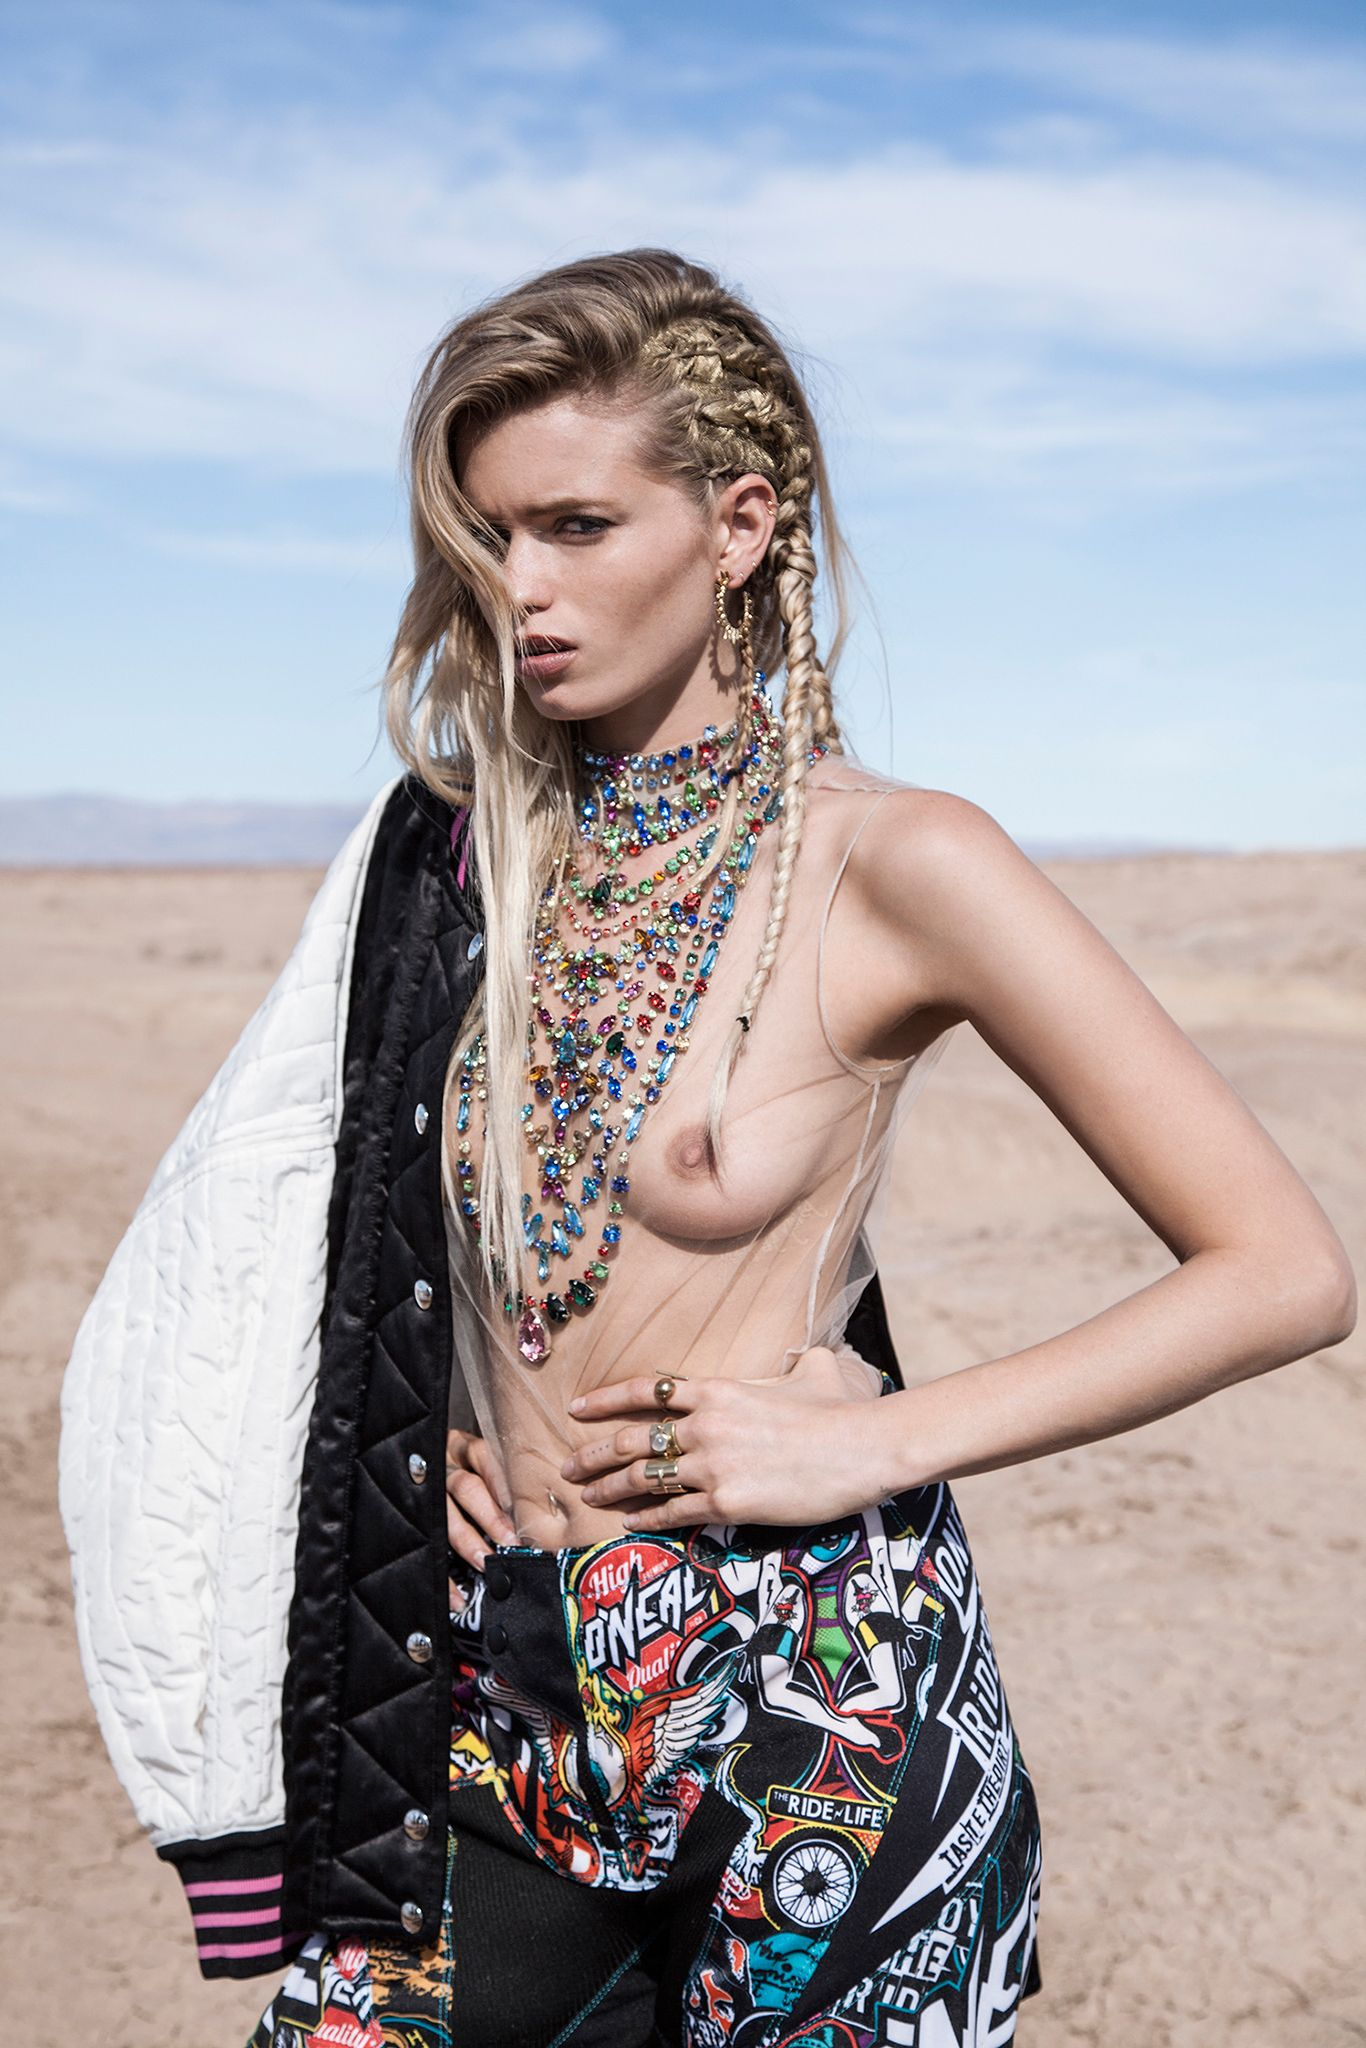 Topless Pics Of Abbey Lee...